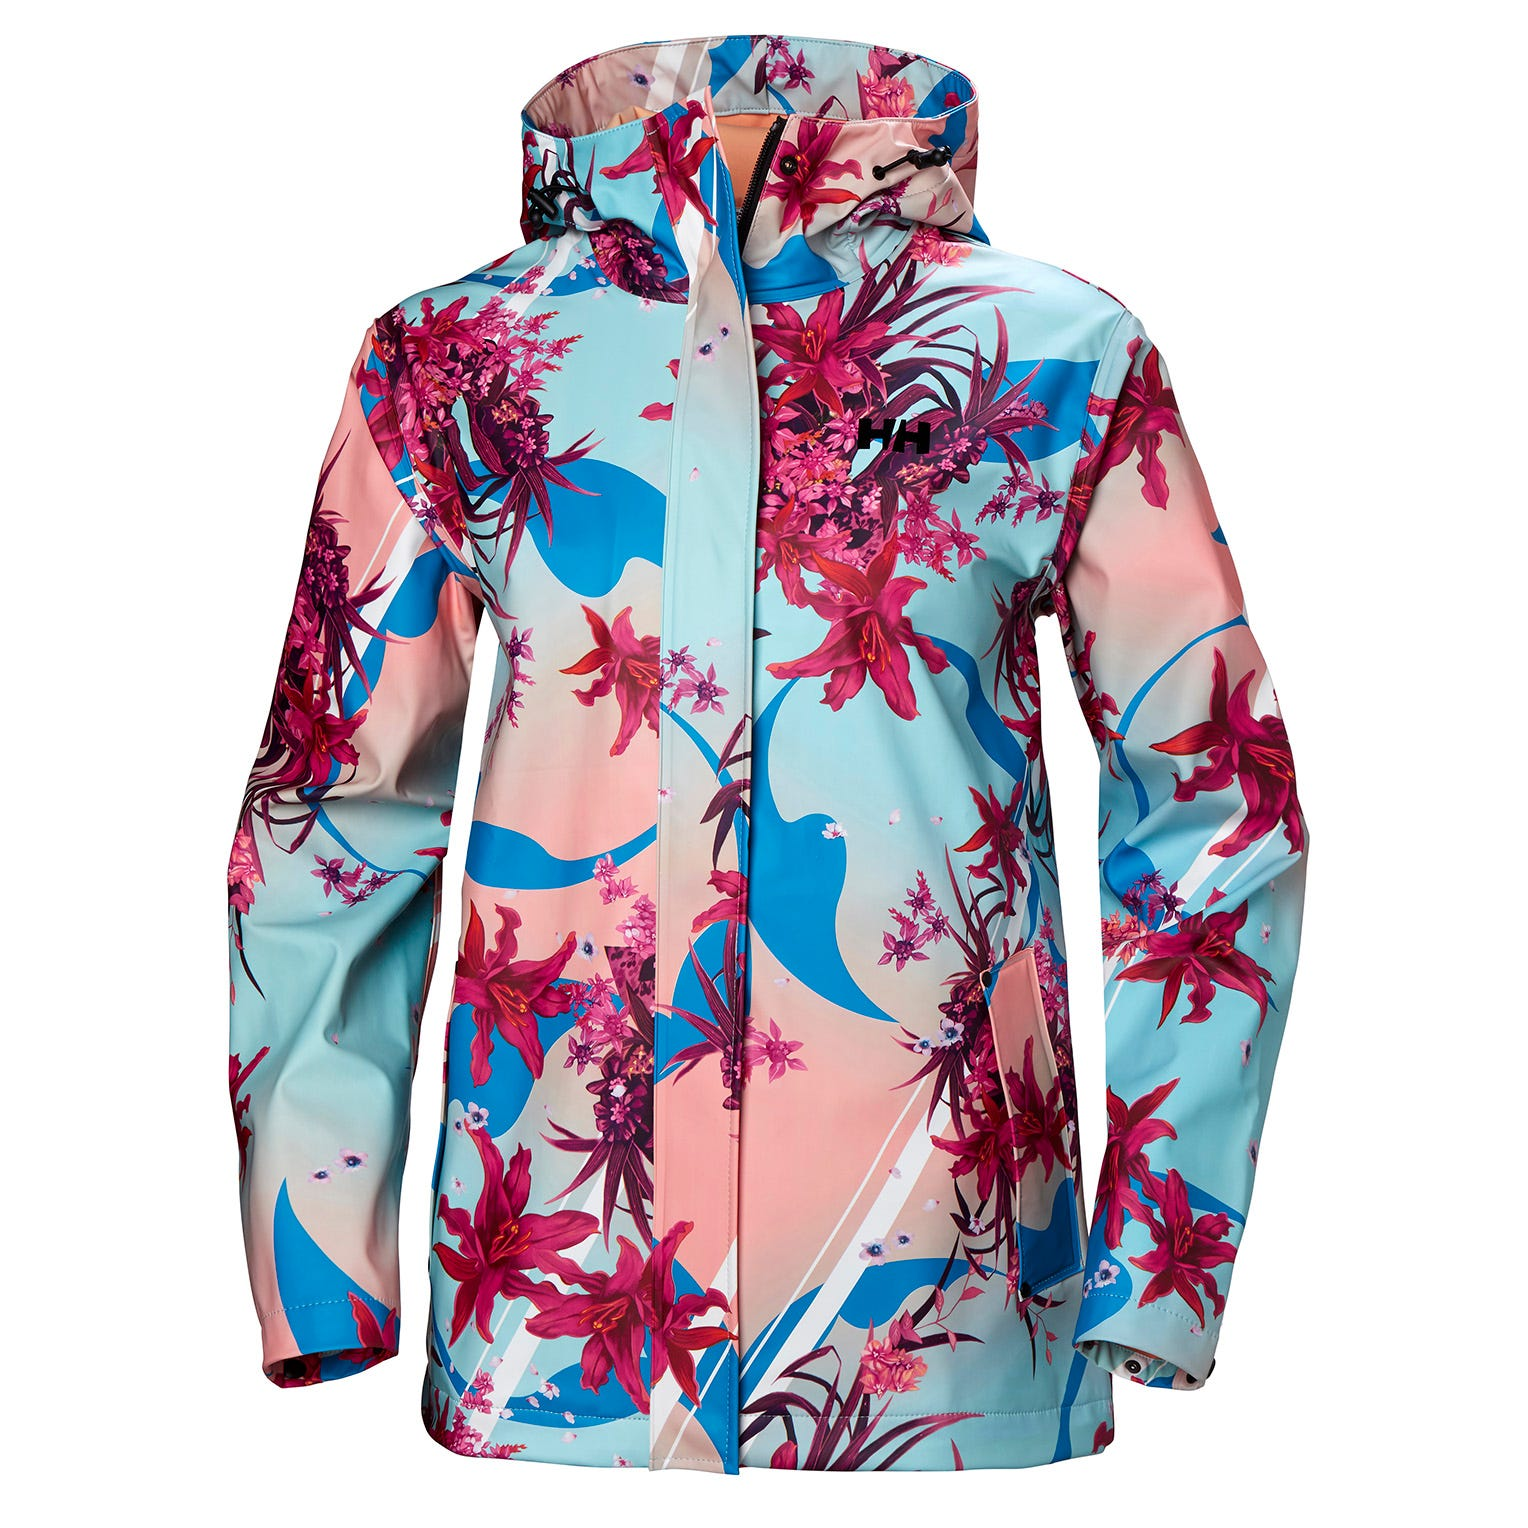 Mujer Helly Hansen Moss Outdoor Chaqueta Impermeable